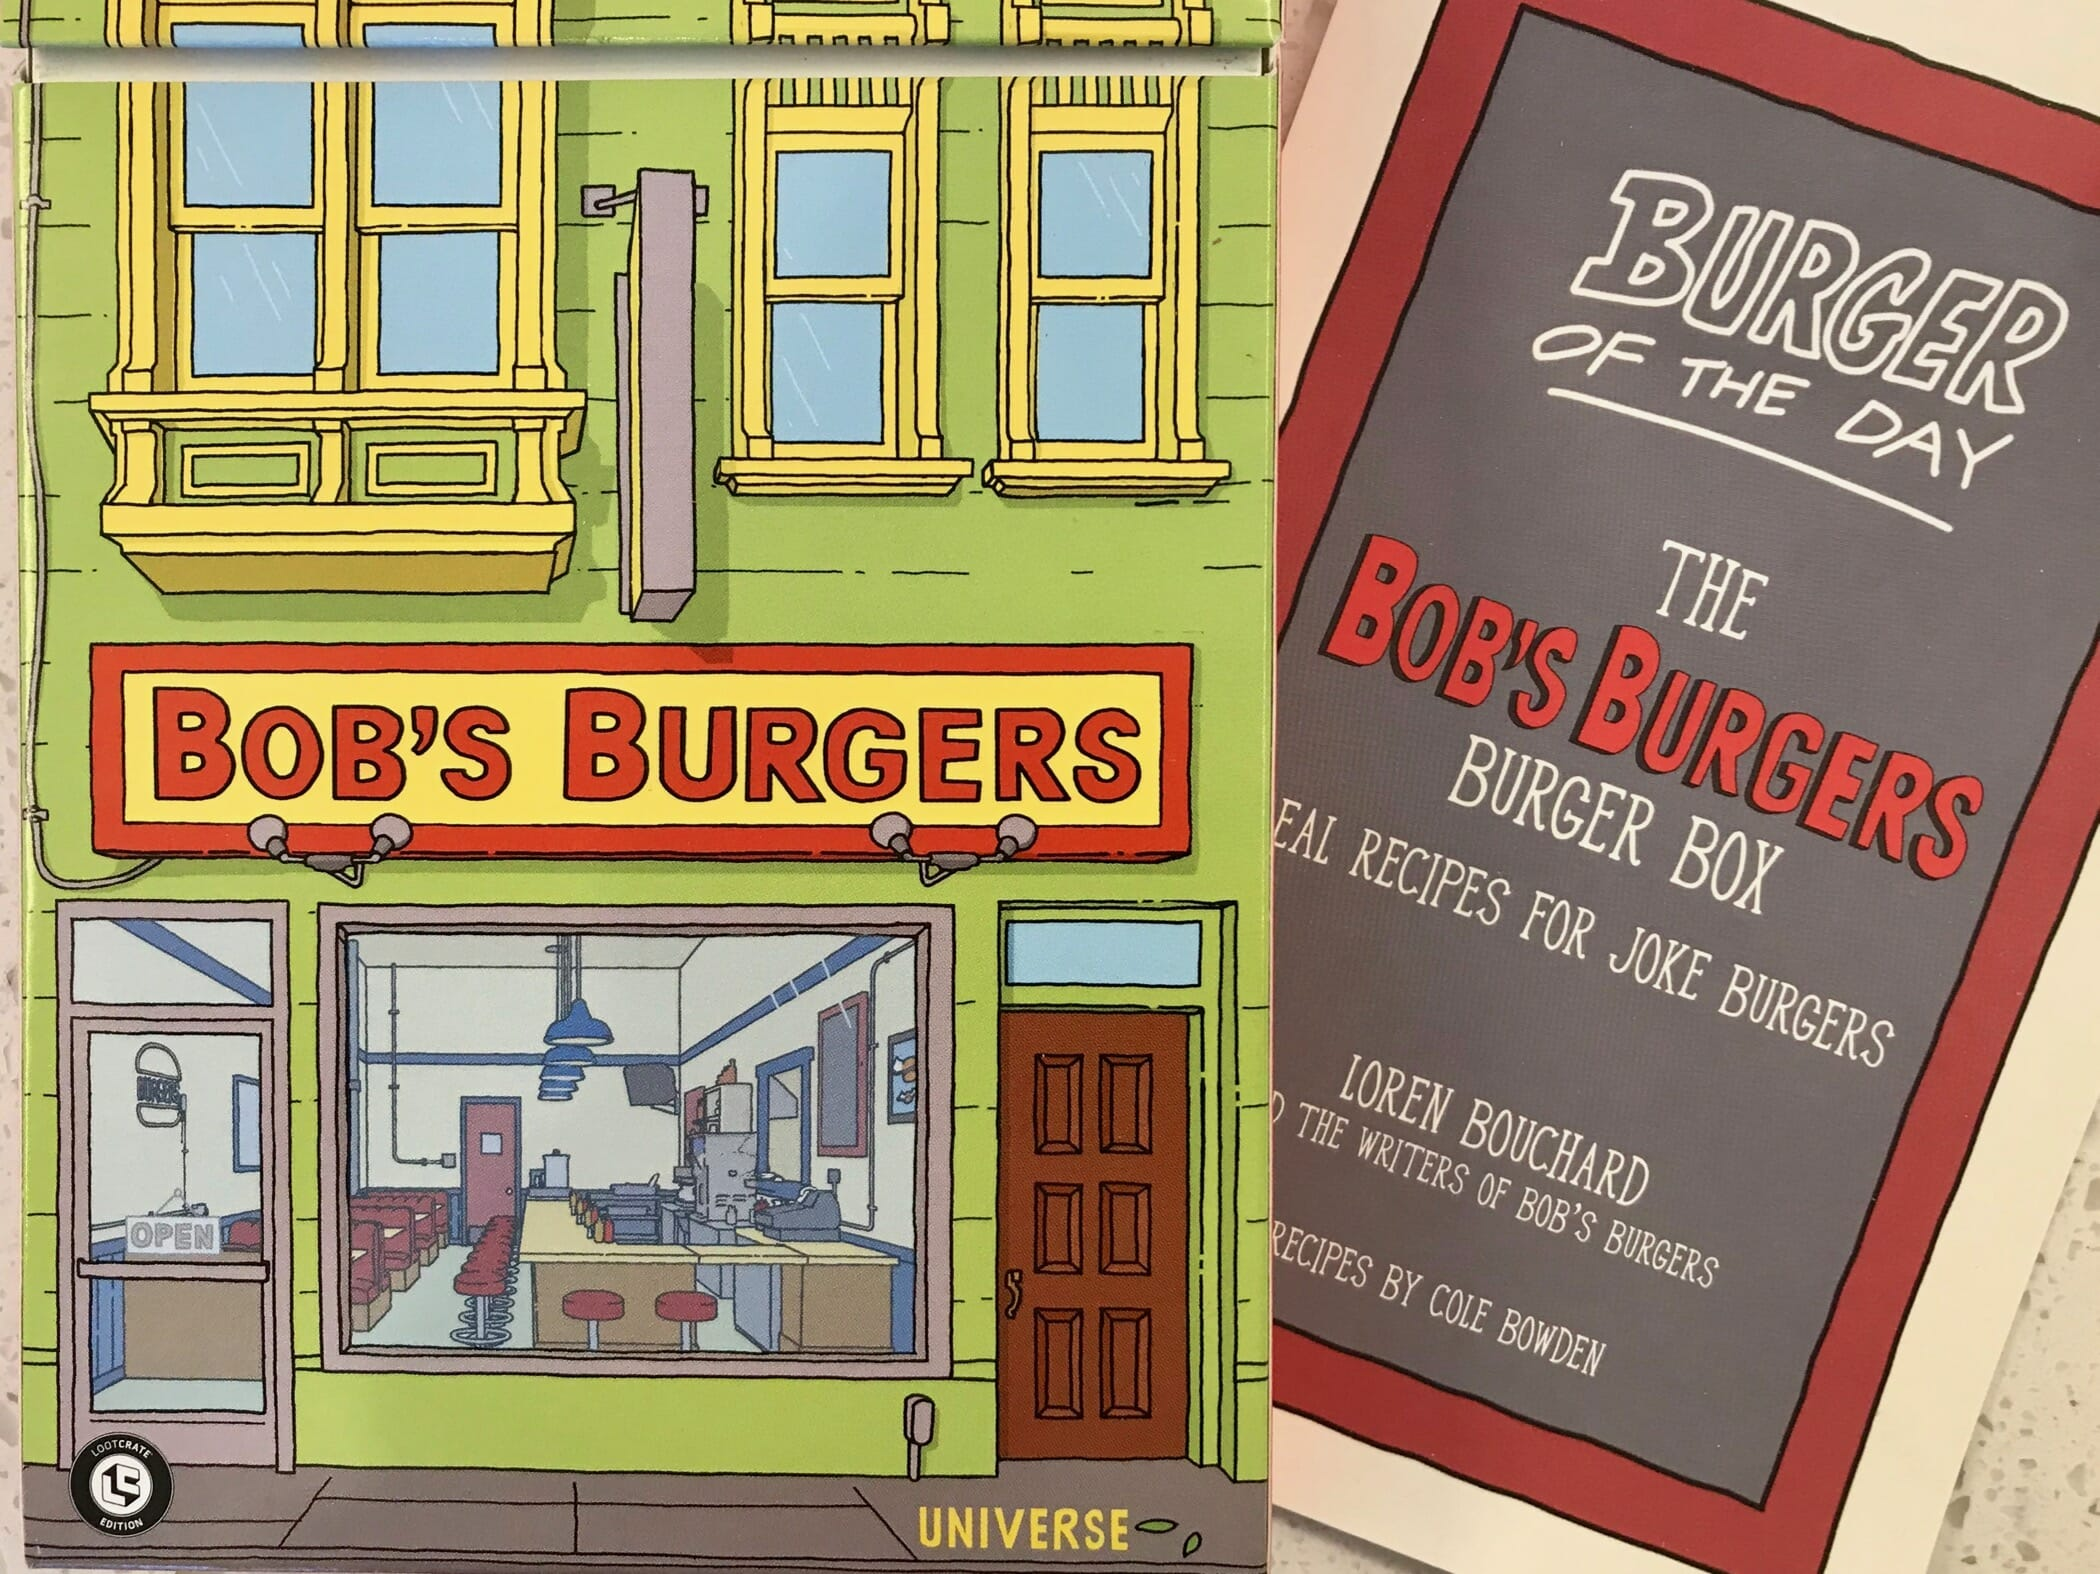 Odd Excellent Bobs Burgers Recipes Youll Love Hesaysshesayskc 03 Our Whole Family Loves The Fox Tv Series And Now That A Friend Has Gifted Us Affair Gone To Next